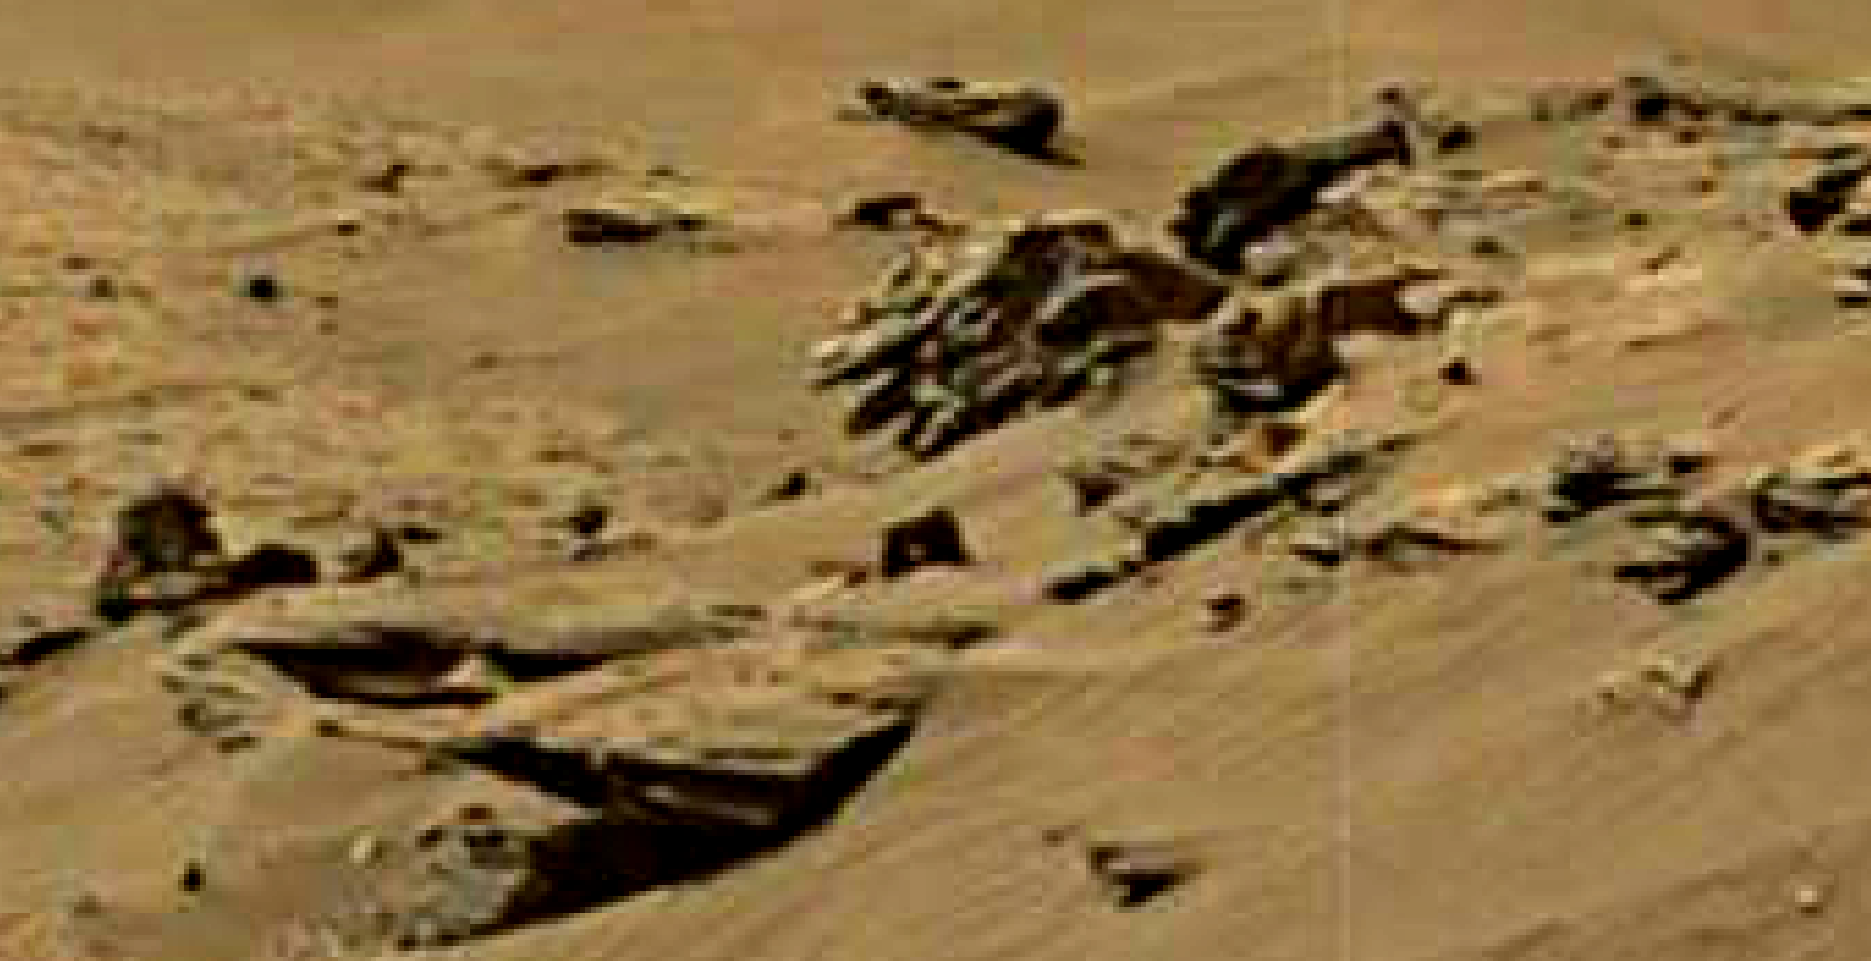 mars sol 1344 anomaly-artifacts 1 was life on mars